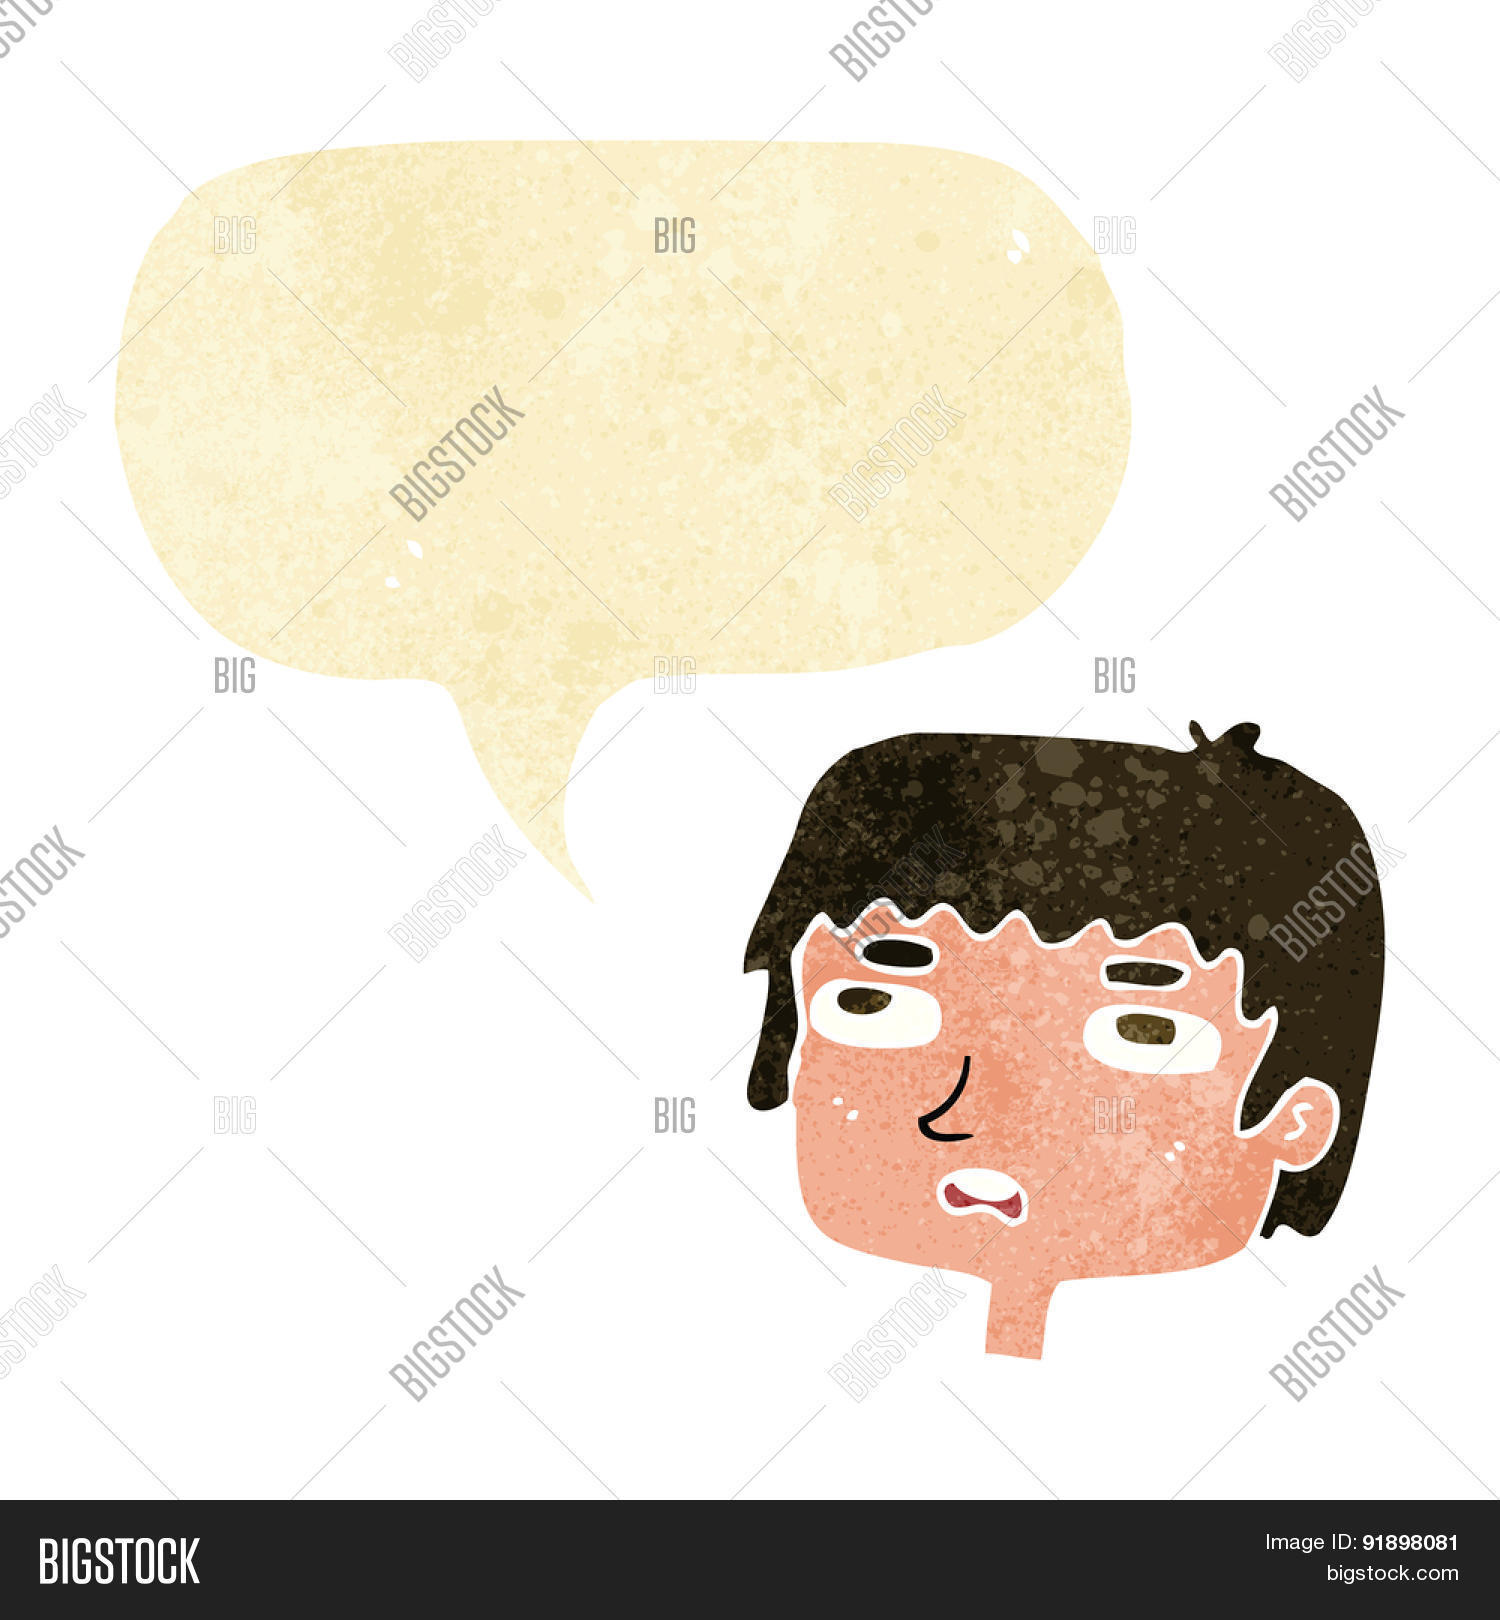 hight resolution of cartoon unhappy face with speech bubble